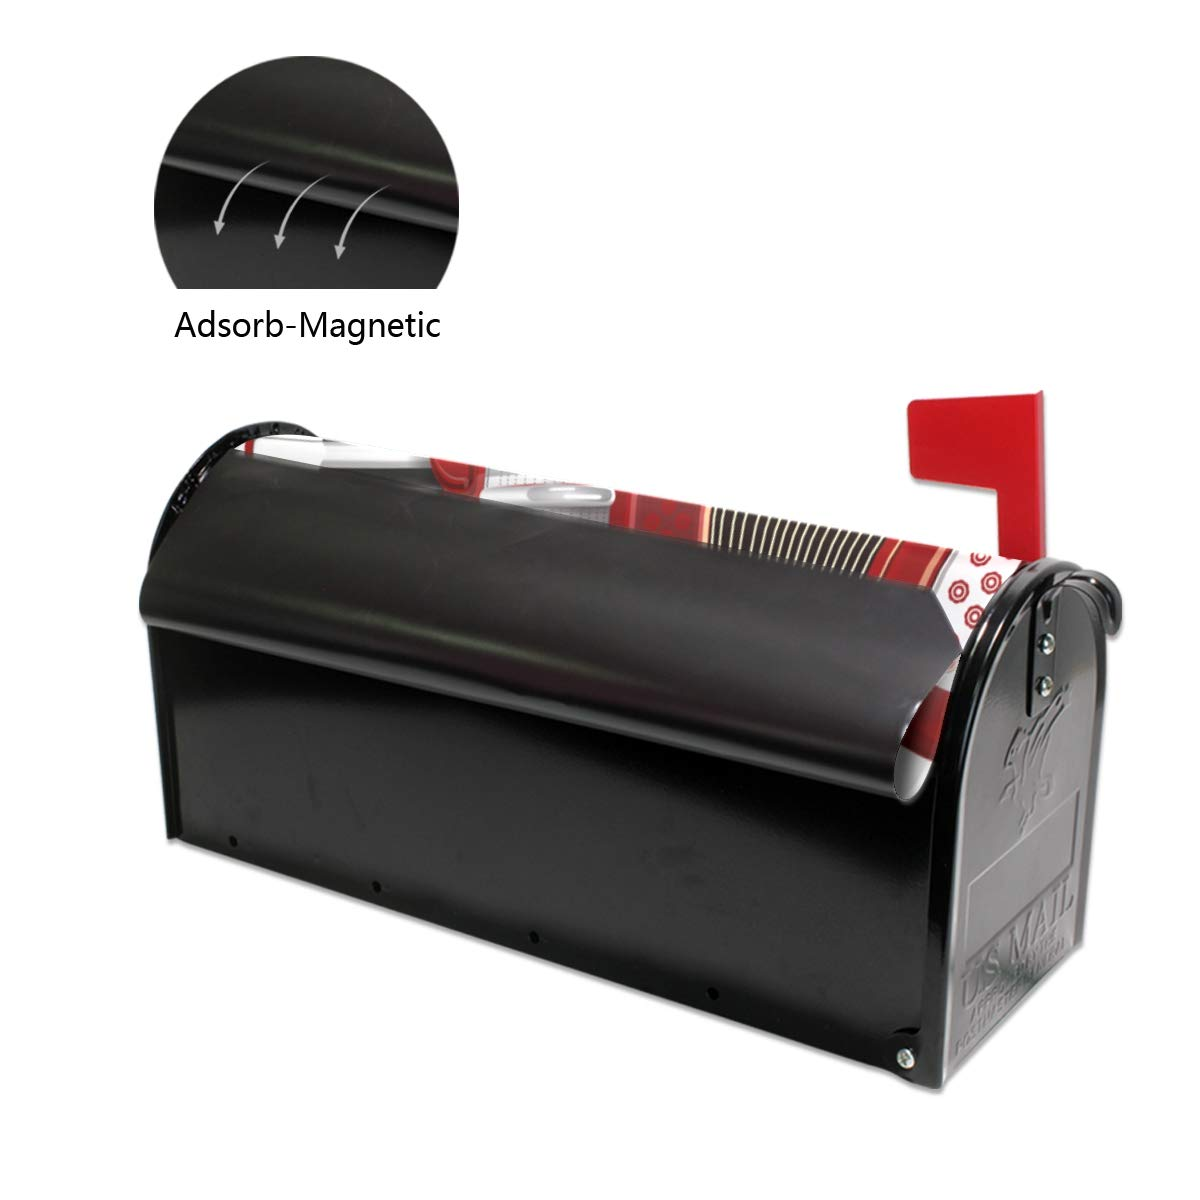 THKDSC Beautiful Melody Accordion Mailbox Covers Standard Size Original Magnetic Mail Cover Letter Post Box 21 Lx 18 W(only Mailbox Cover)